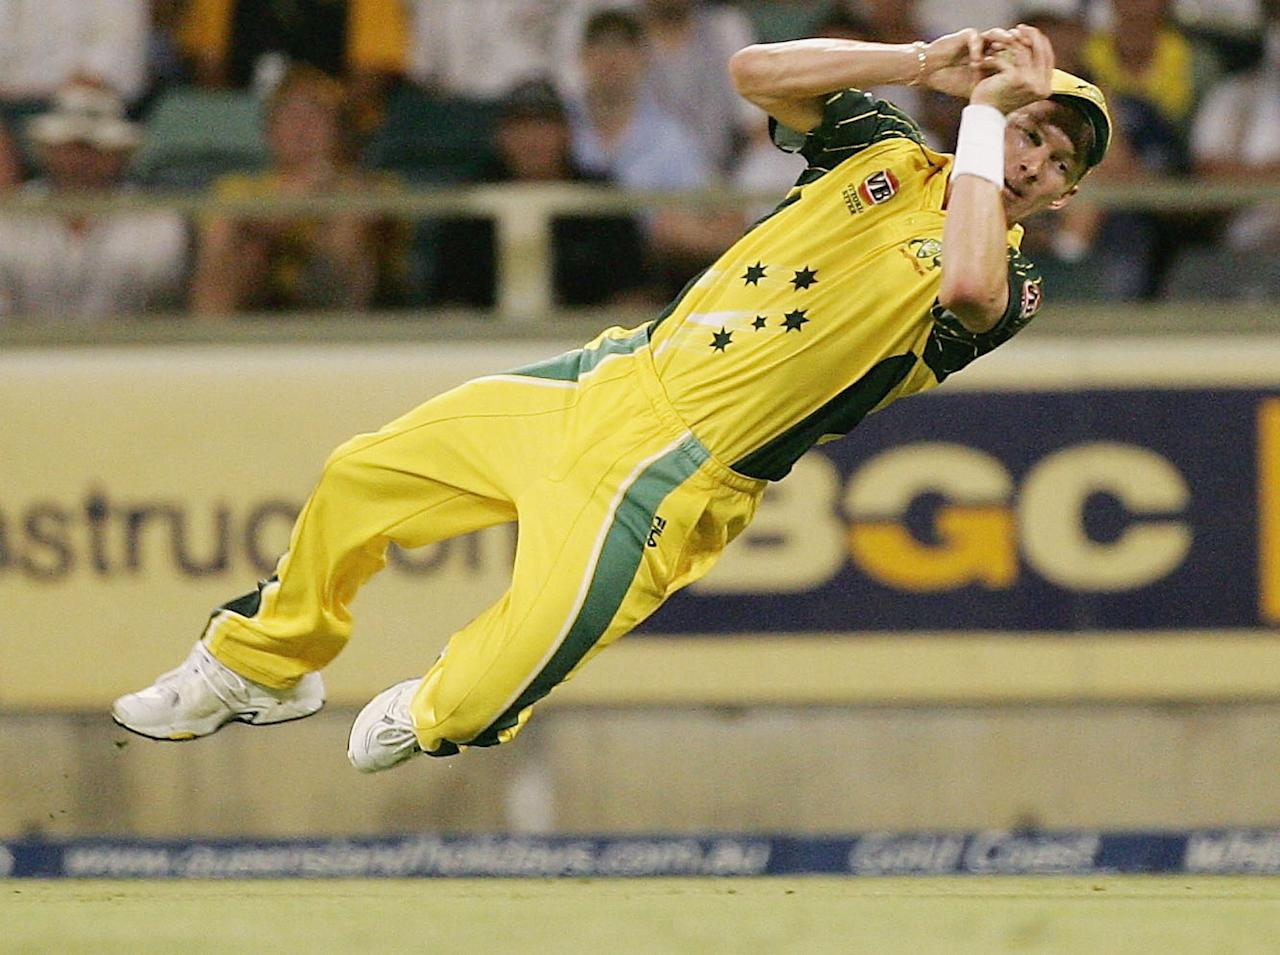 PERTH, AUSTRALIA - JANUARY 30:  Brett Lee of Australia dives to catch Shahid Afridi of Pakistan during game eight of the VB Series One Day International Tournament between Australia and Pakistan played at the WACA on January 30, 2005 in Perth, Australia. (Photo by Hamish Blair/Getty Images)